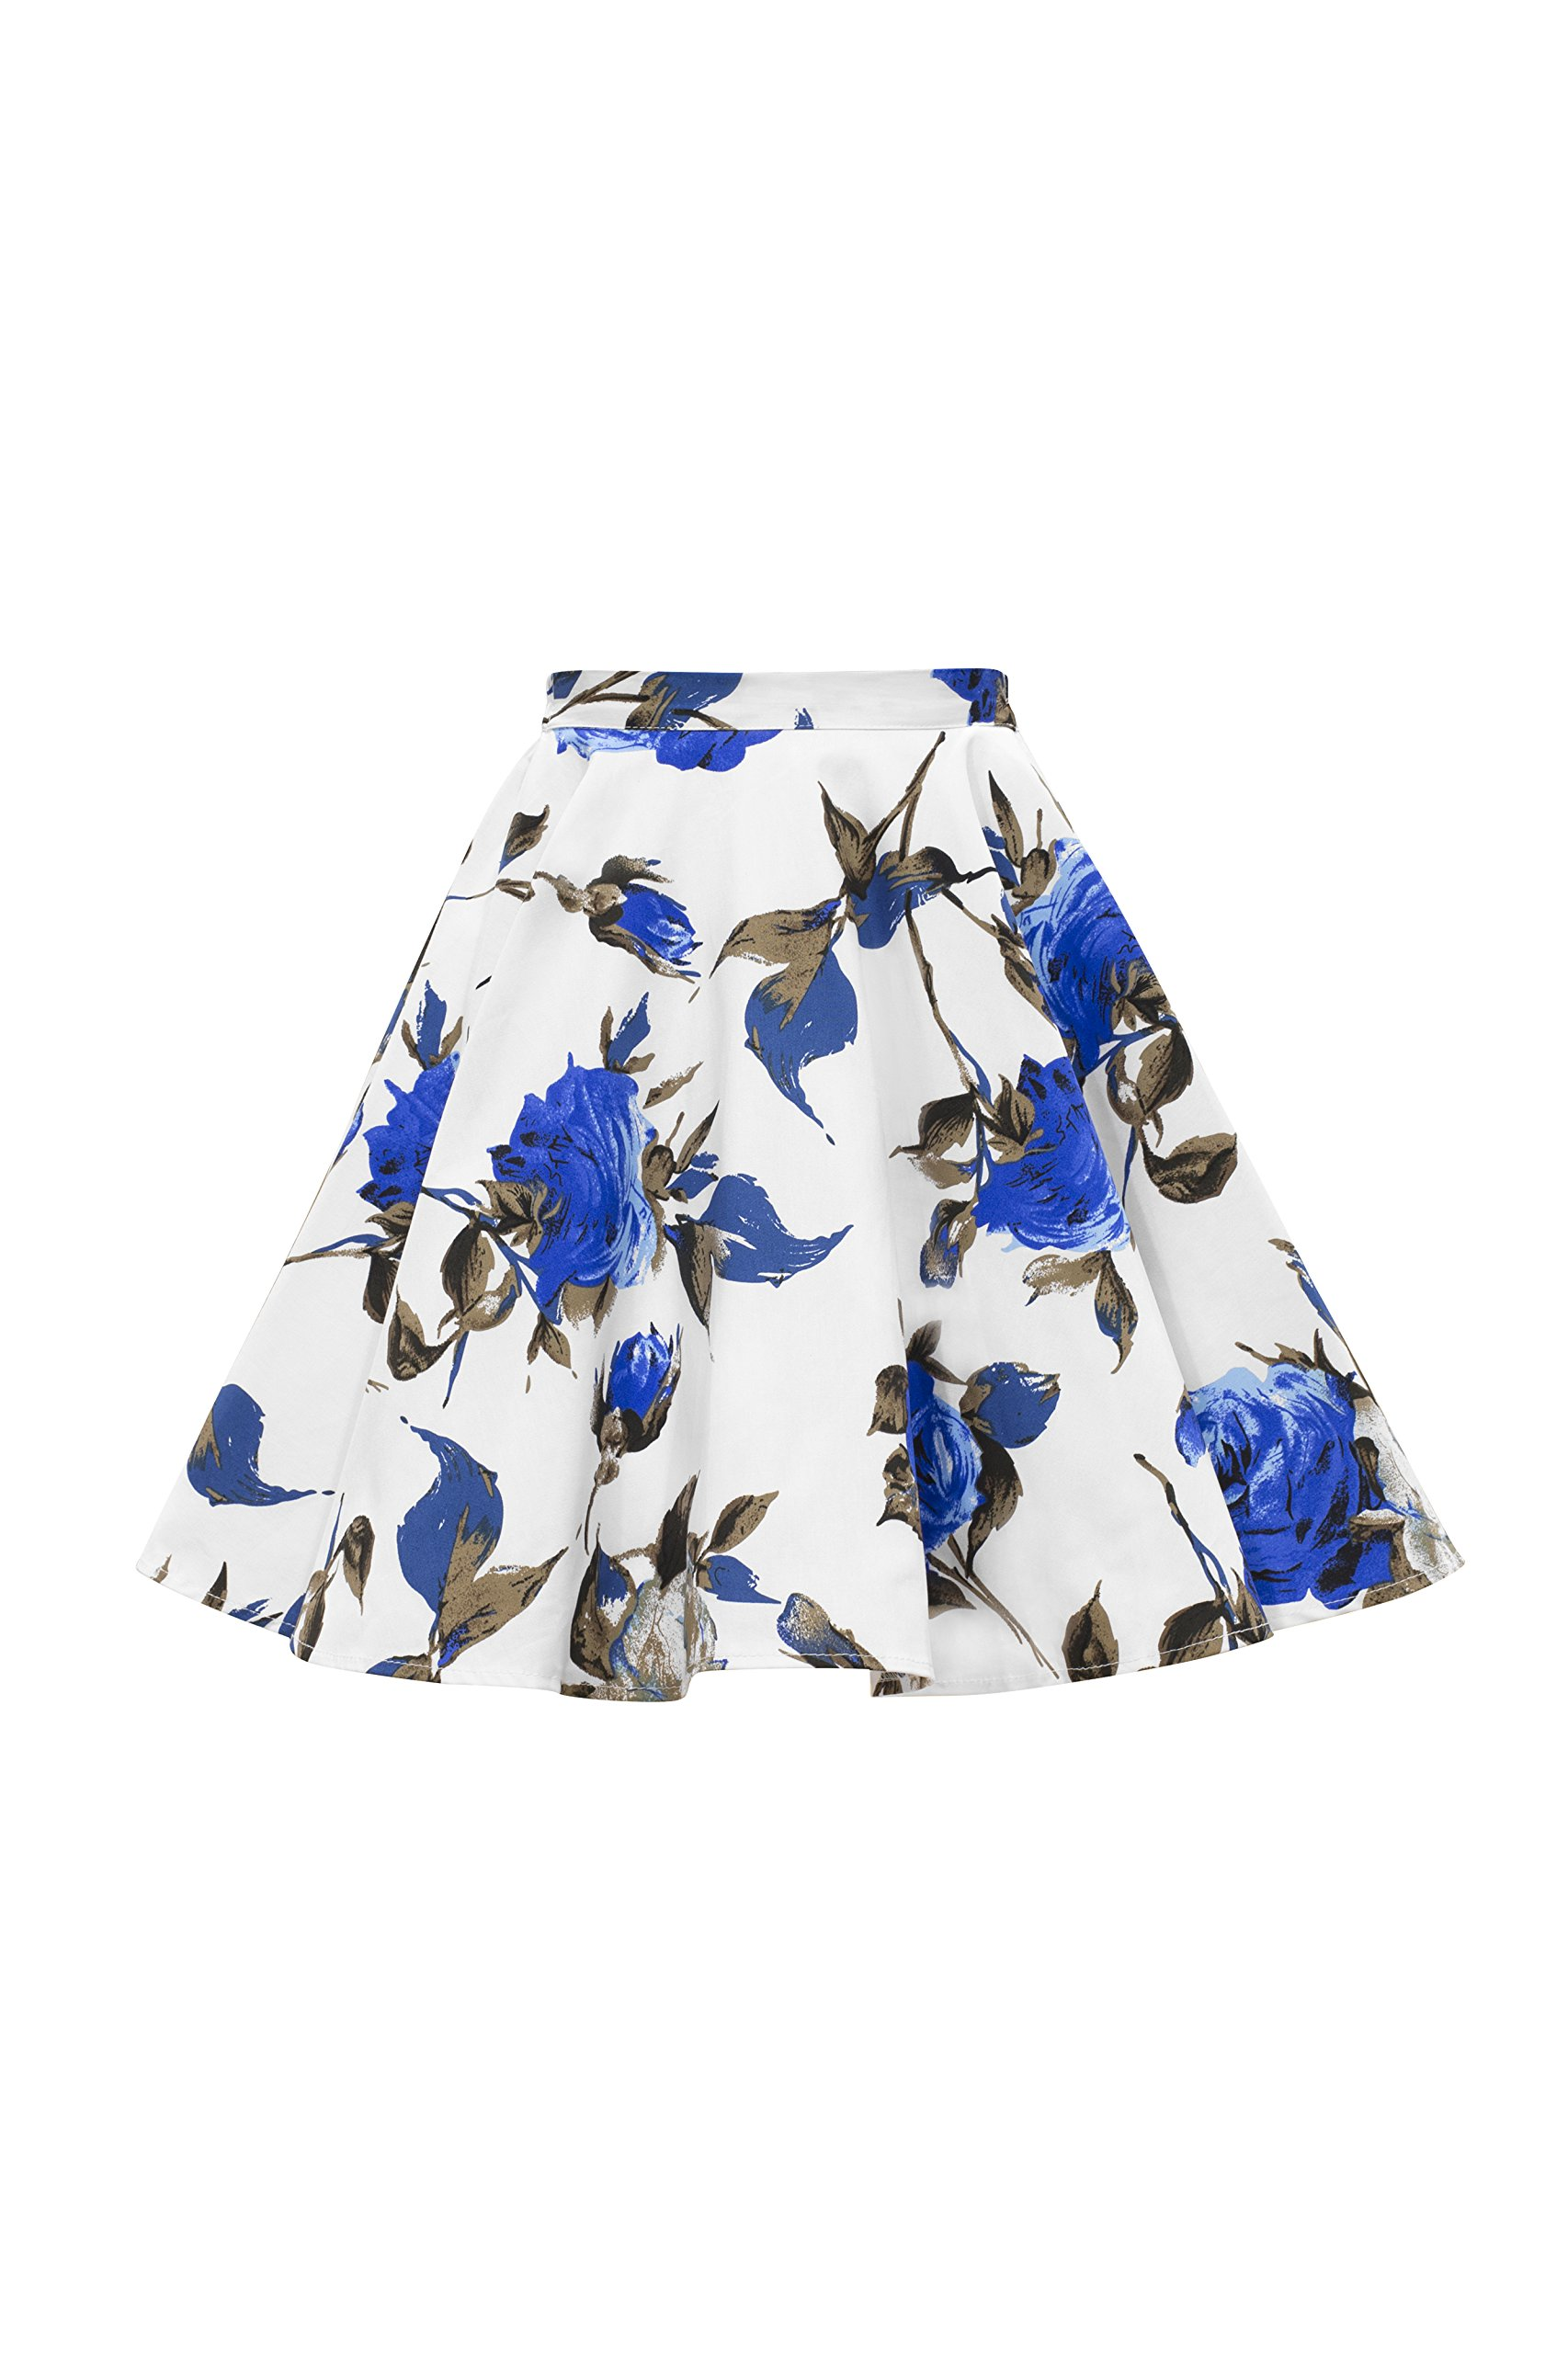 BlackButterfly Kids Vintage 50's Full Circle Girls Swing Skirt (Mercy - White Blue, 7-8 yrs)